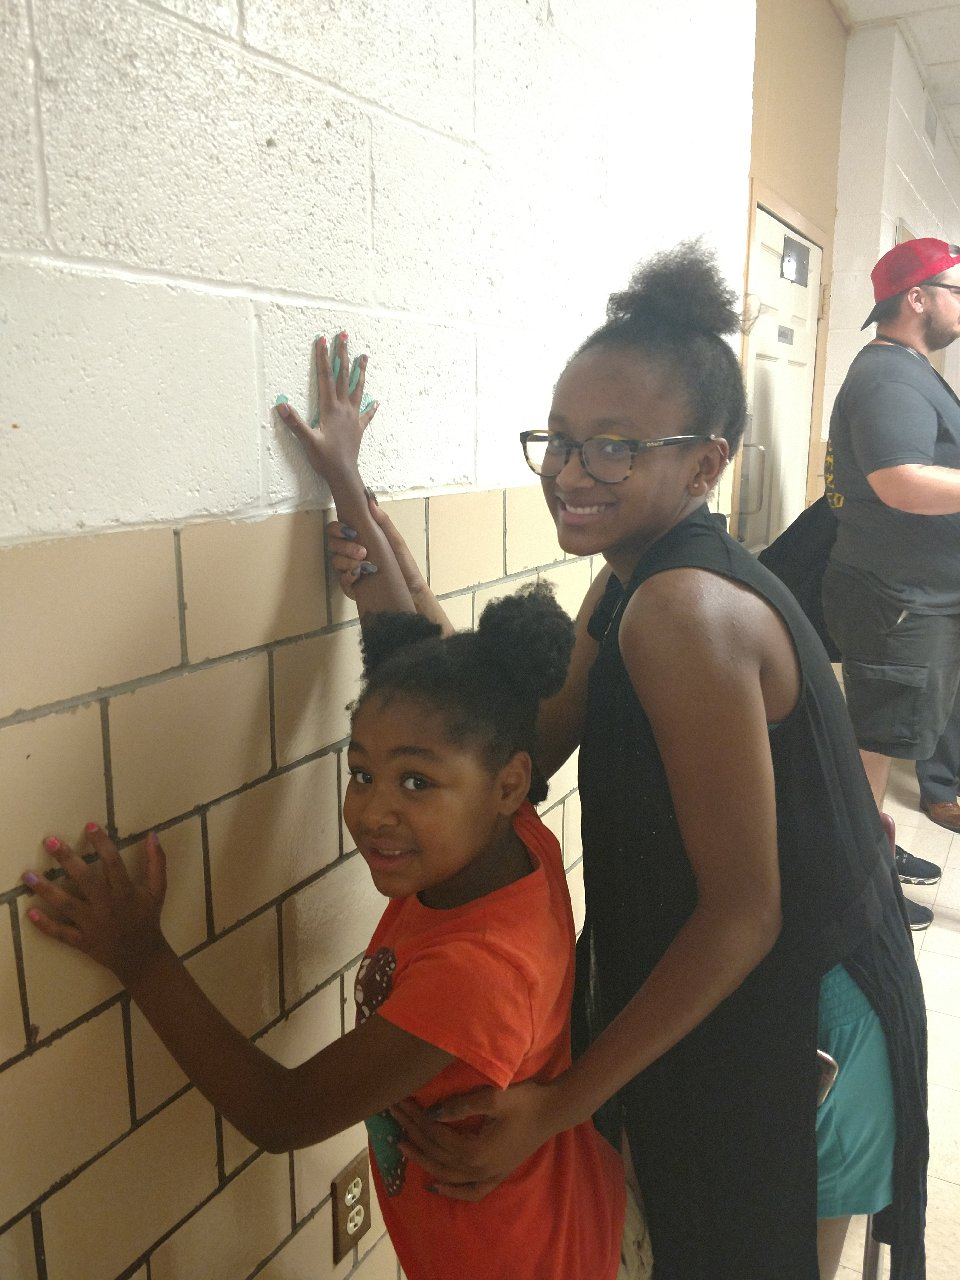 Hallway of Hope brings community together